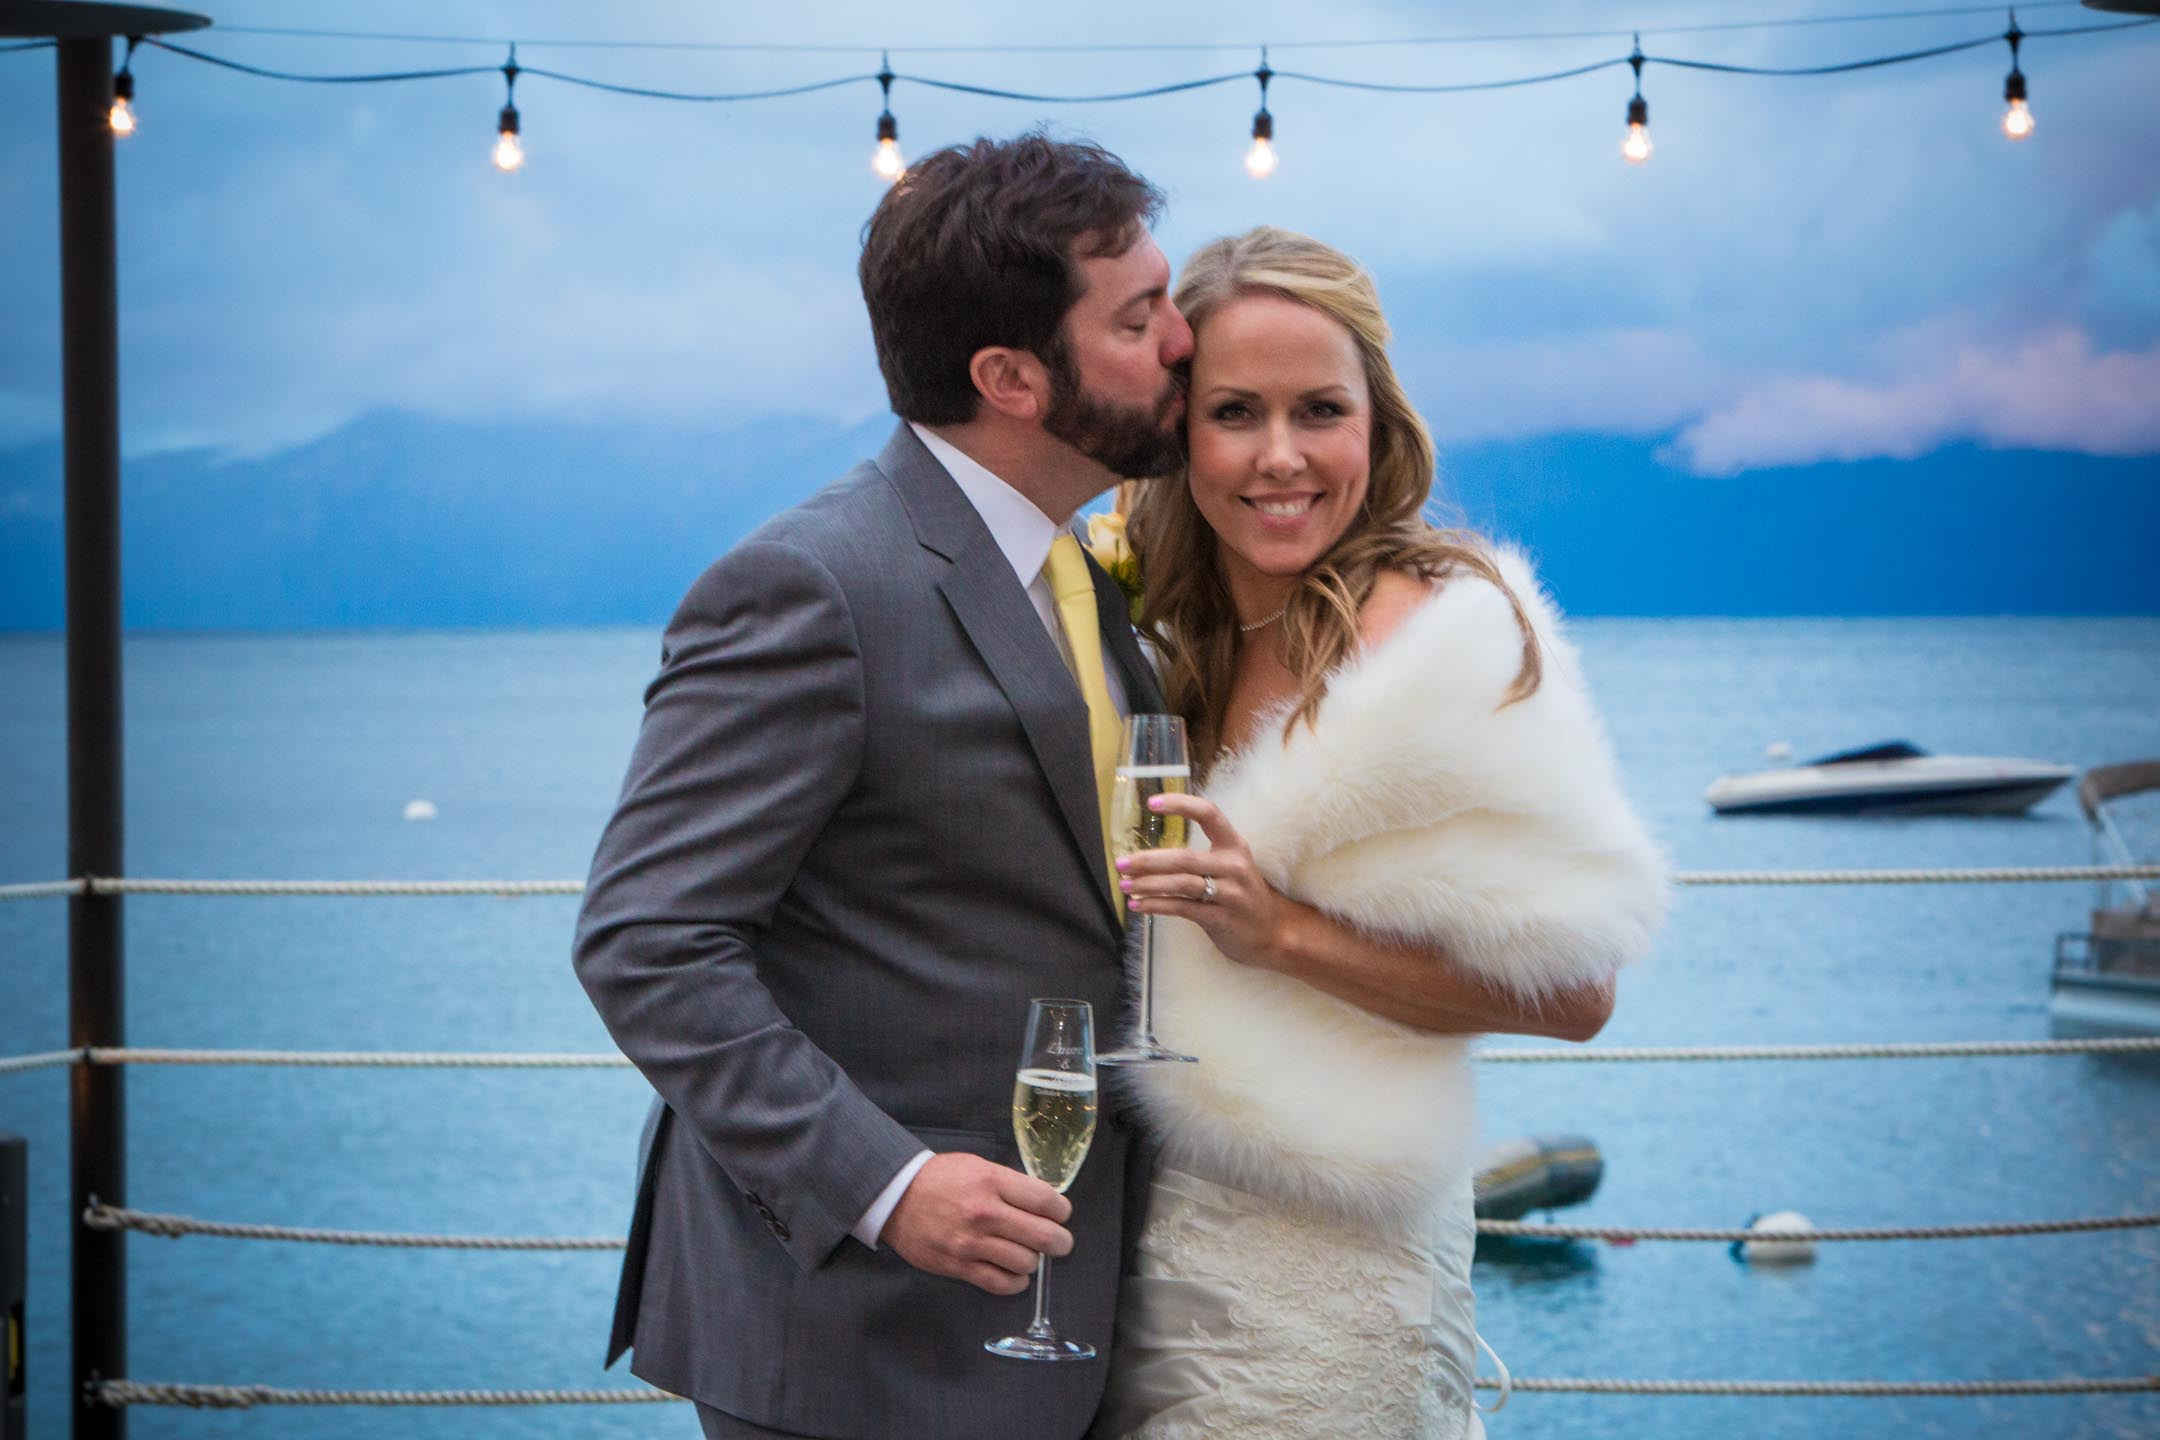 Tahoe Wedding Photos